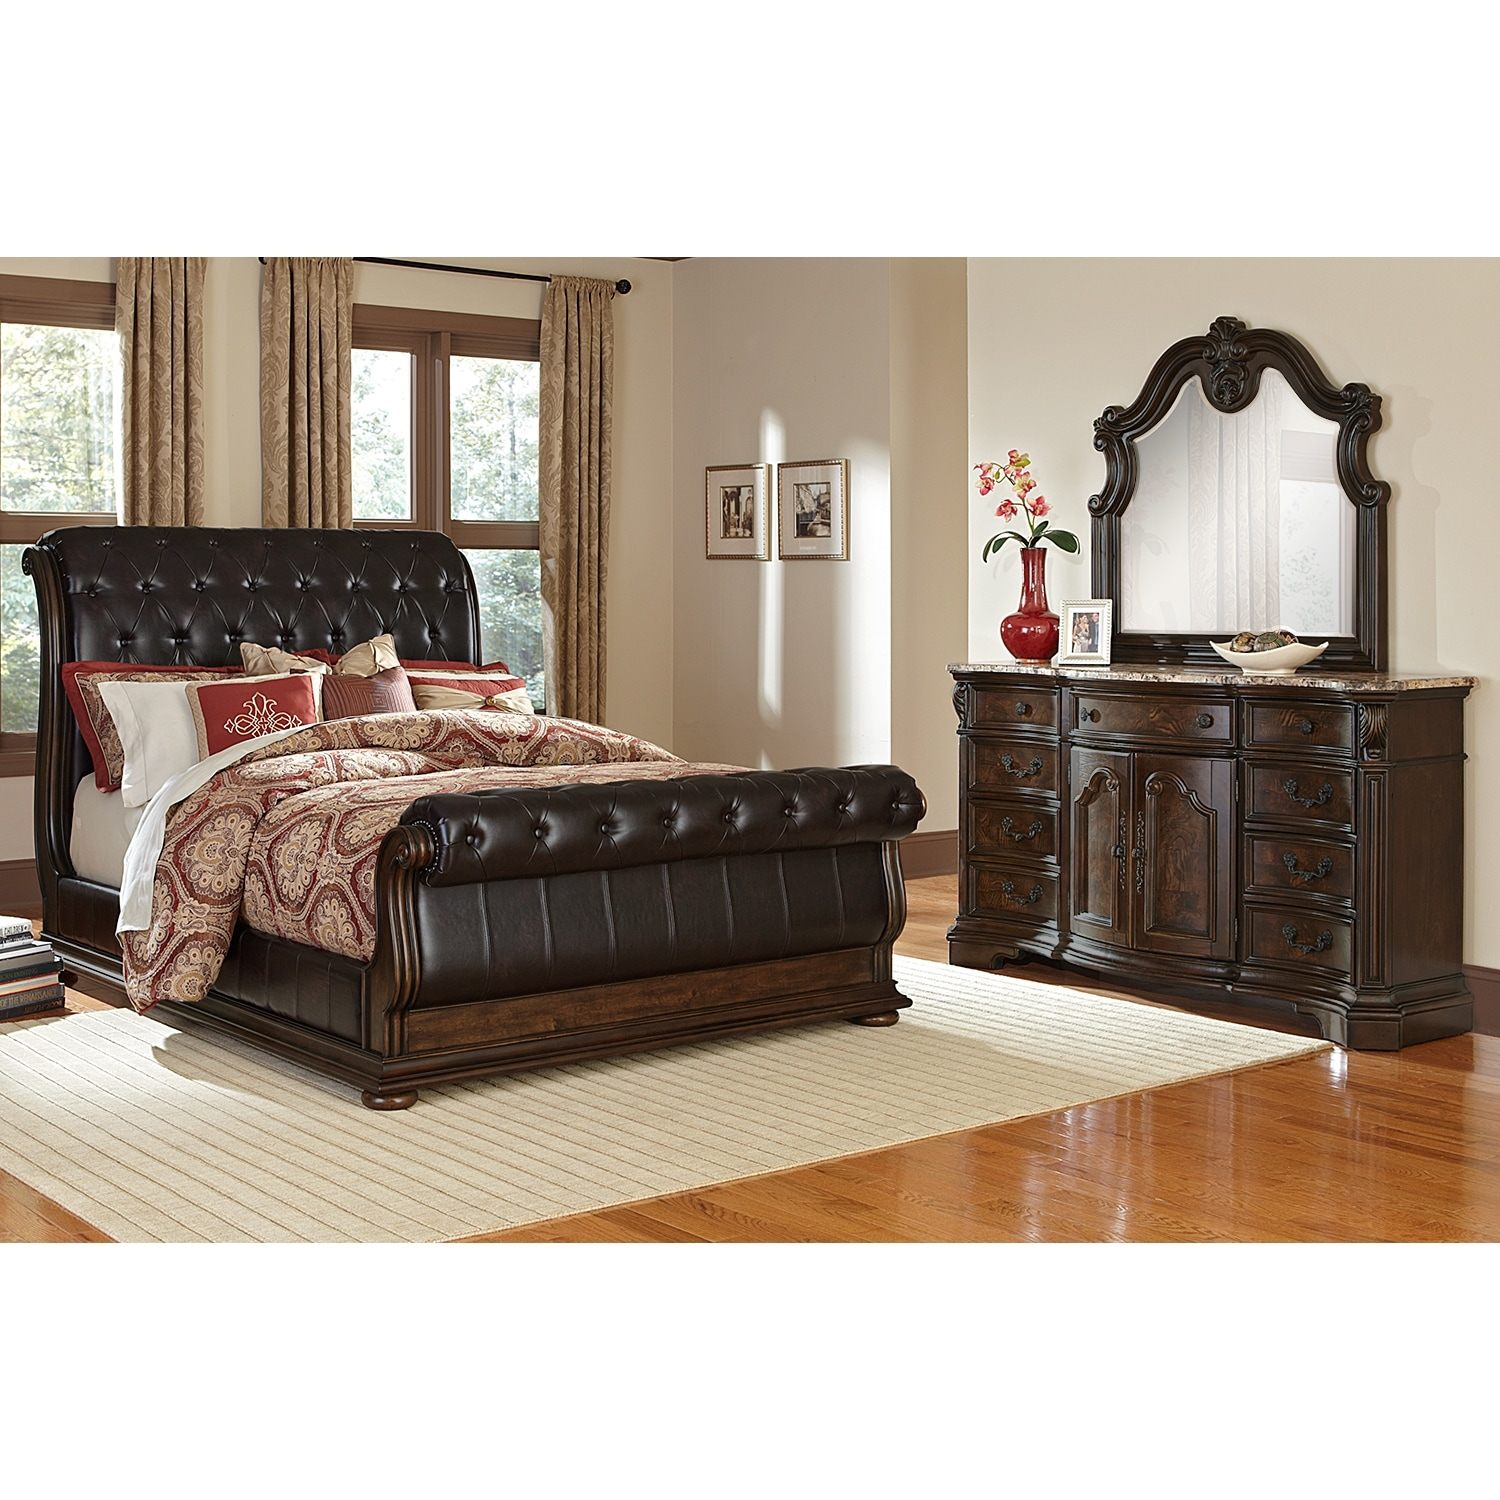 Monticello pecan ii 5 pc king bedroom value city furniture for Bedroom furniture